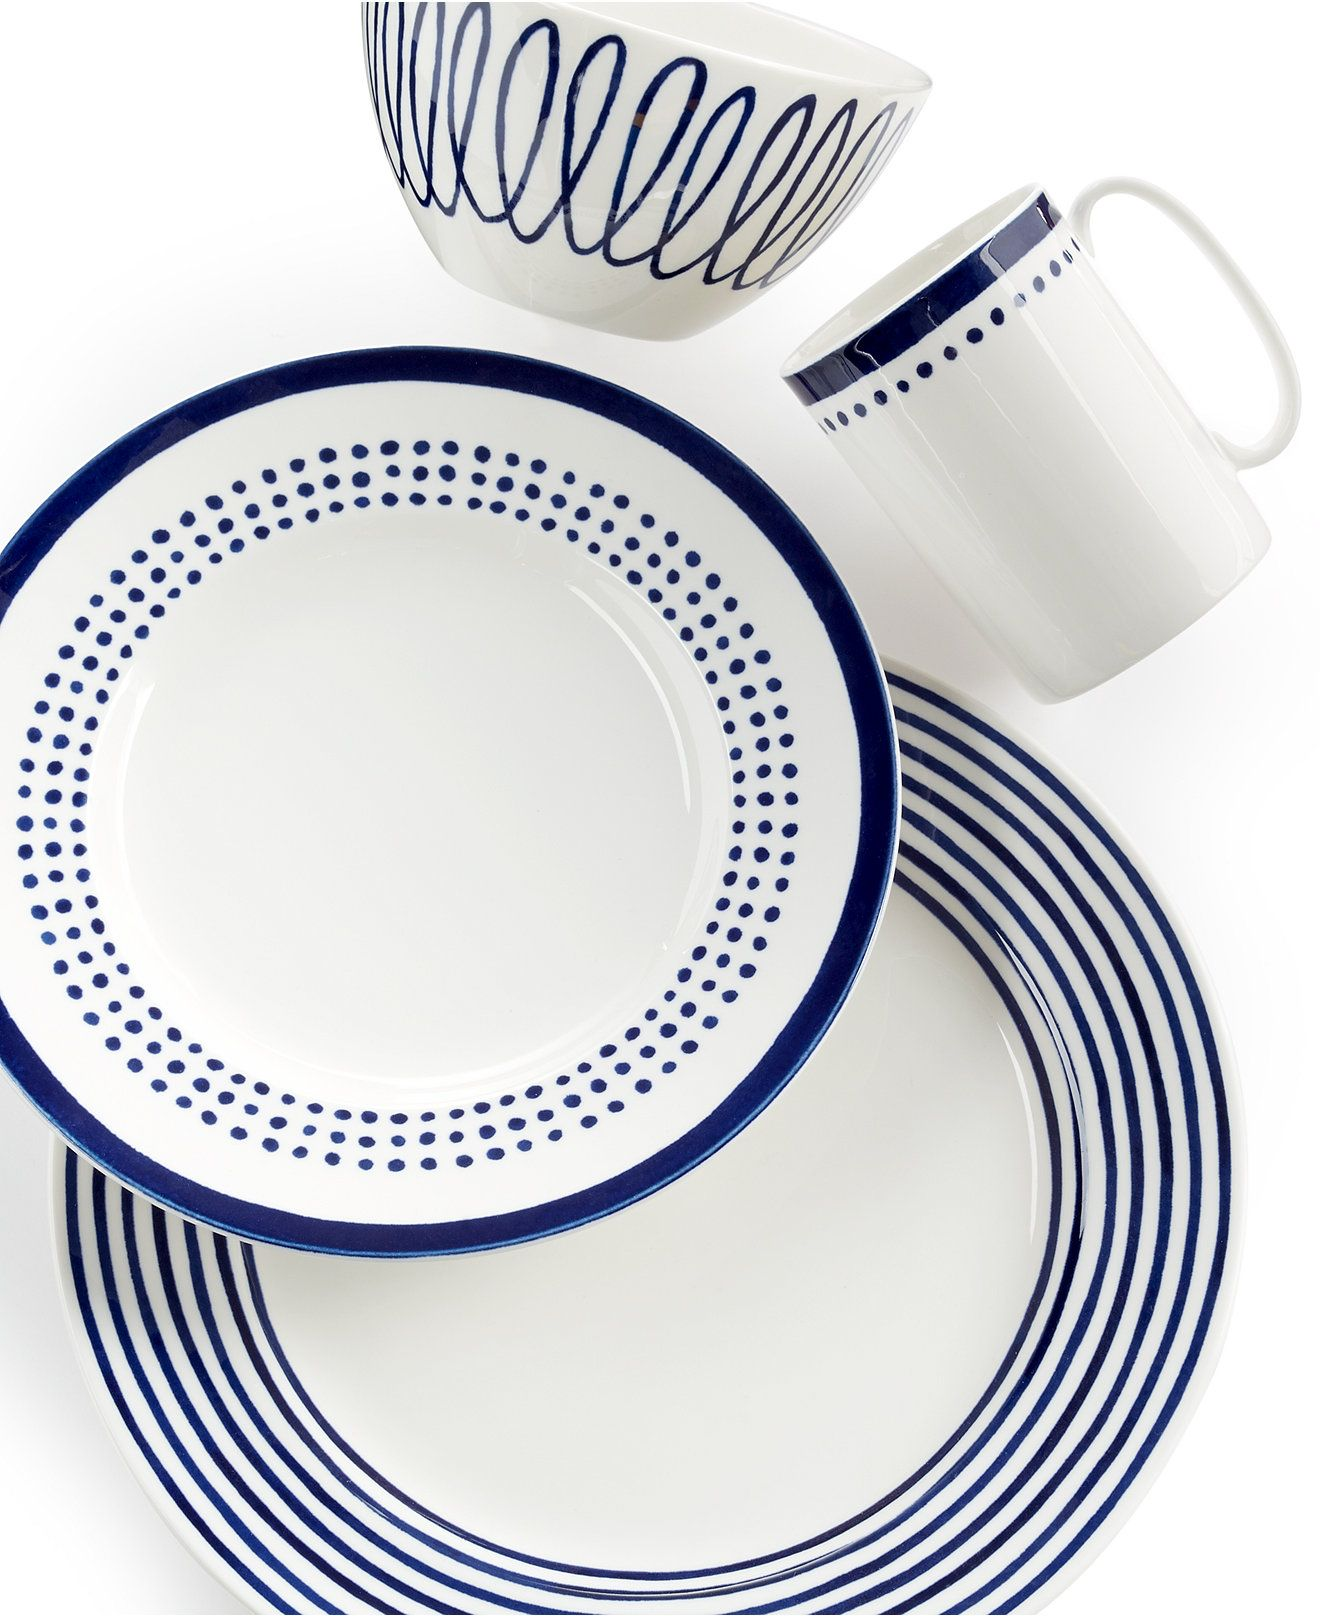 kate spade new york Charlotte Street East 4 Piece Place Setting. Casual DinnerwareDinnerware SetsWedding ...  sc 1 st  Pinterest & kate spade new york Charlotte Street East 4 Piece Place Setting ...